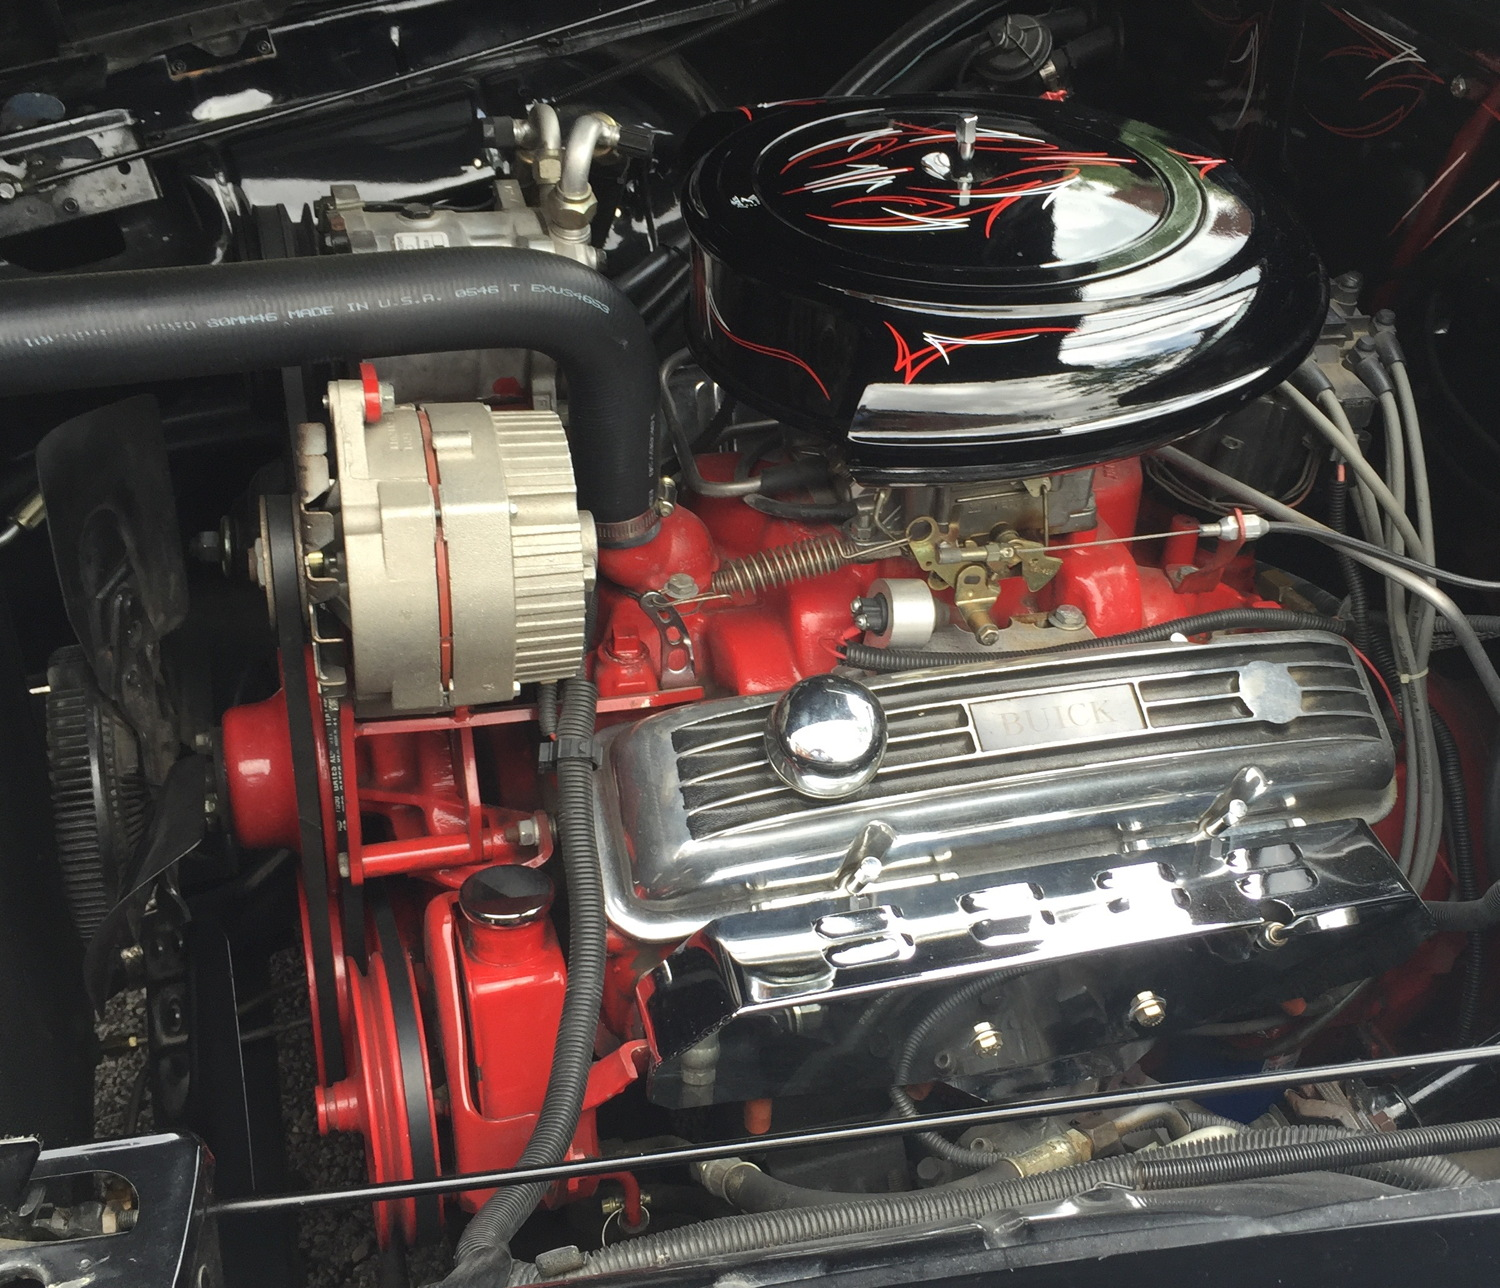 60's V8 engine in 1951 Buick